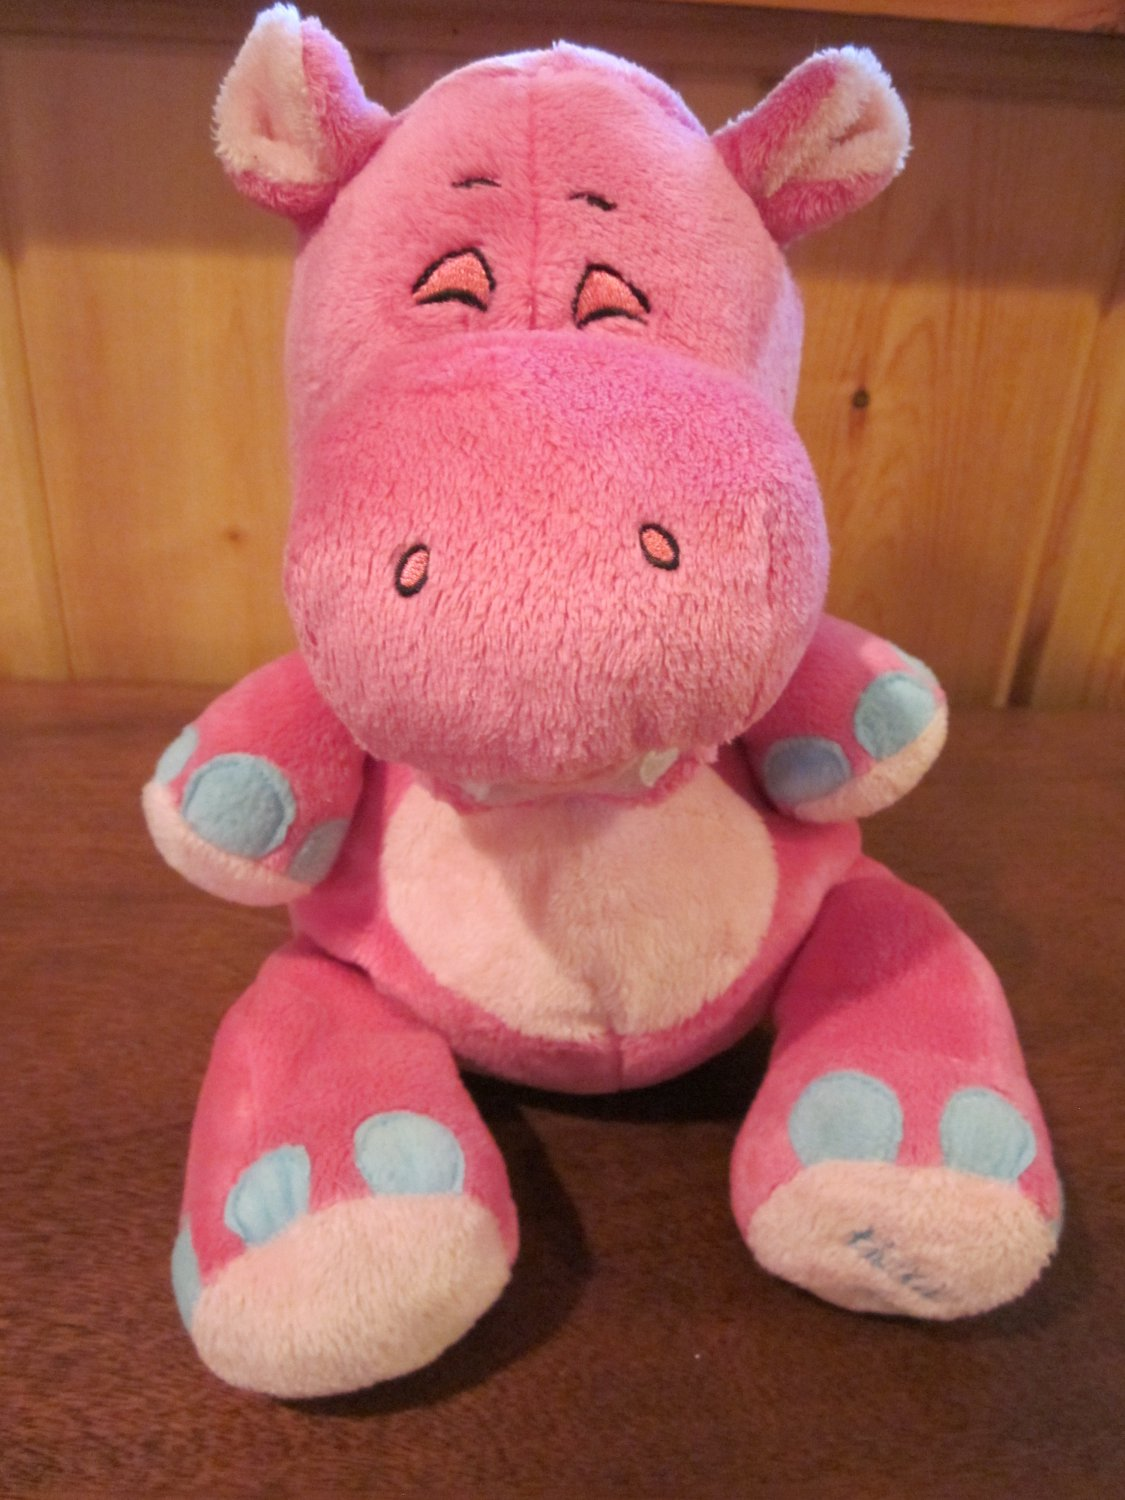 Tickle Toes Pink Hippo by Luv n' Care Plush Laughing Giggling Toy